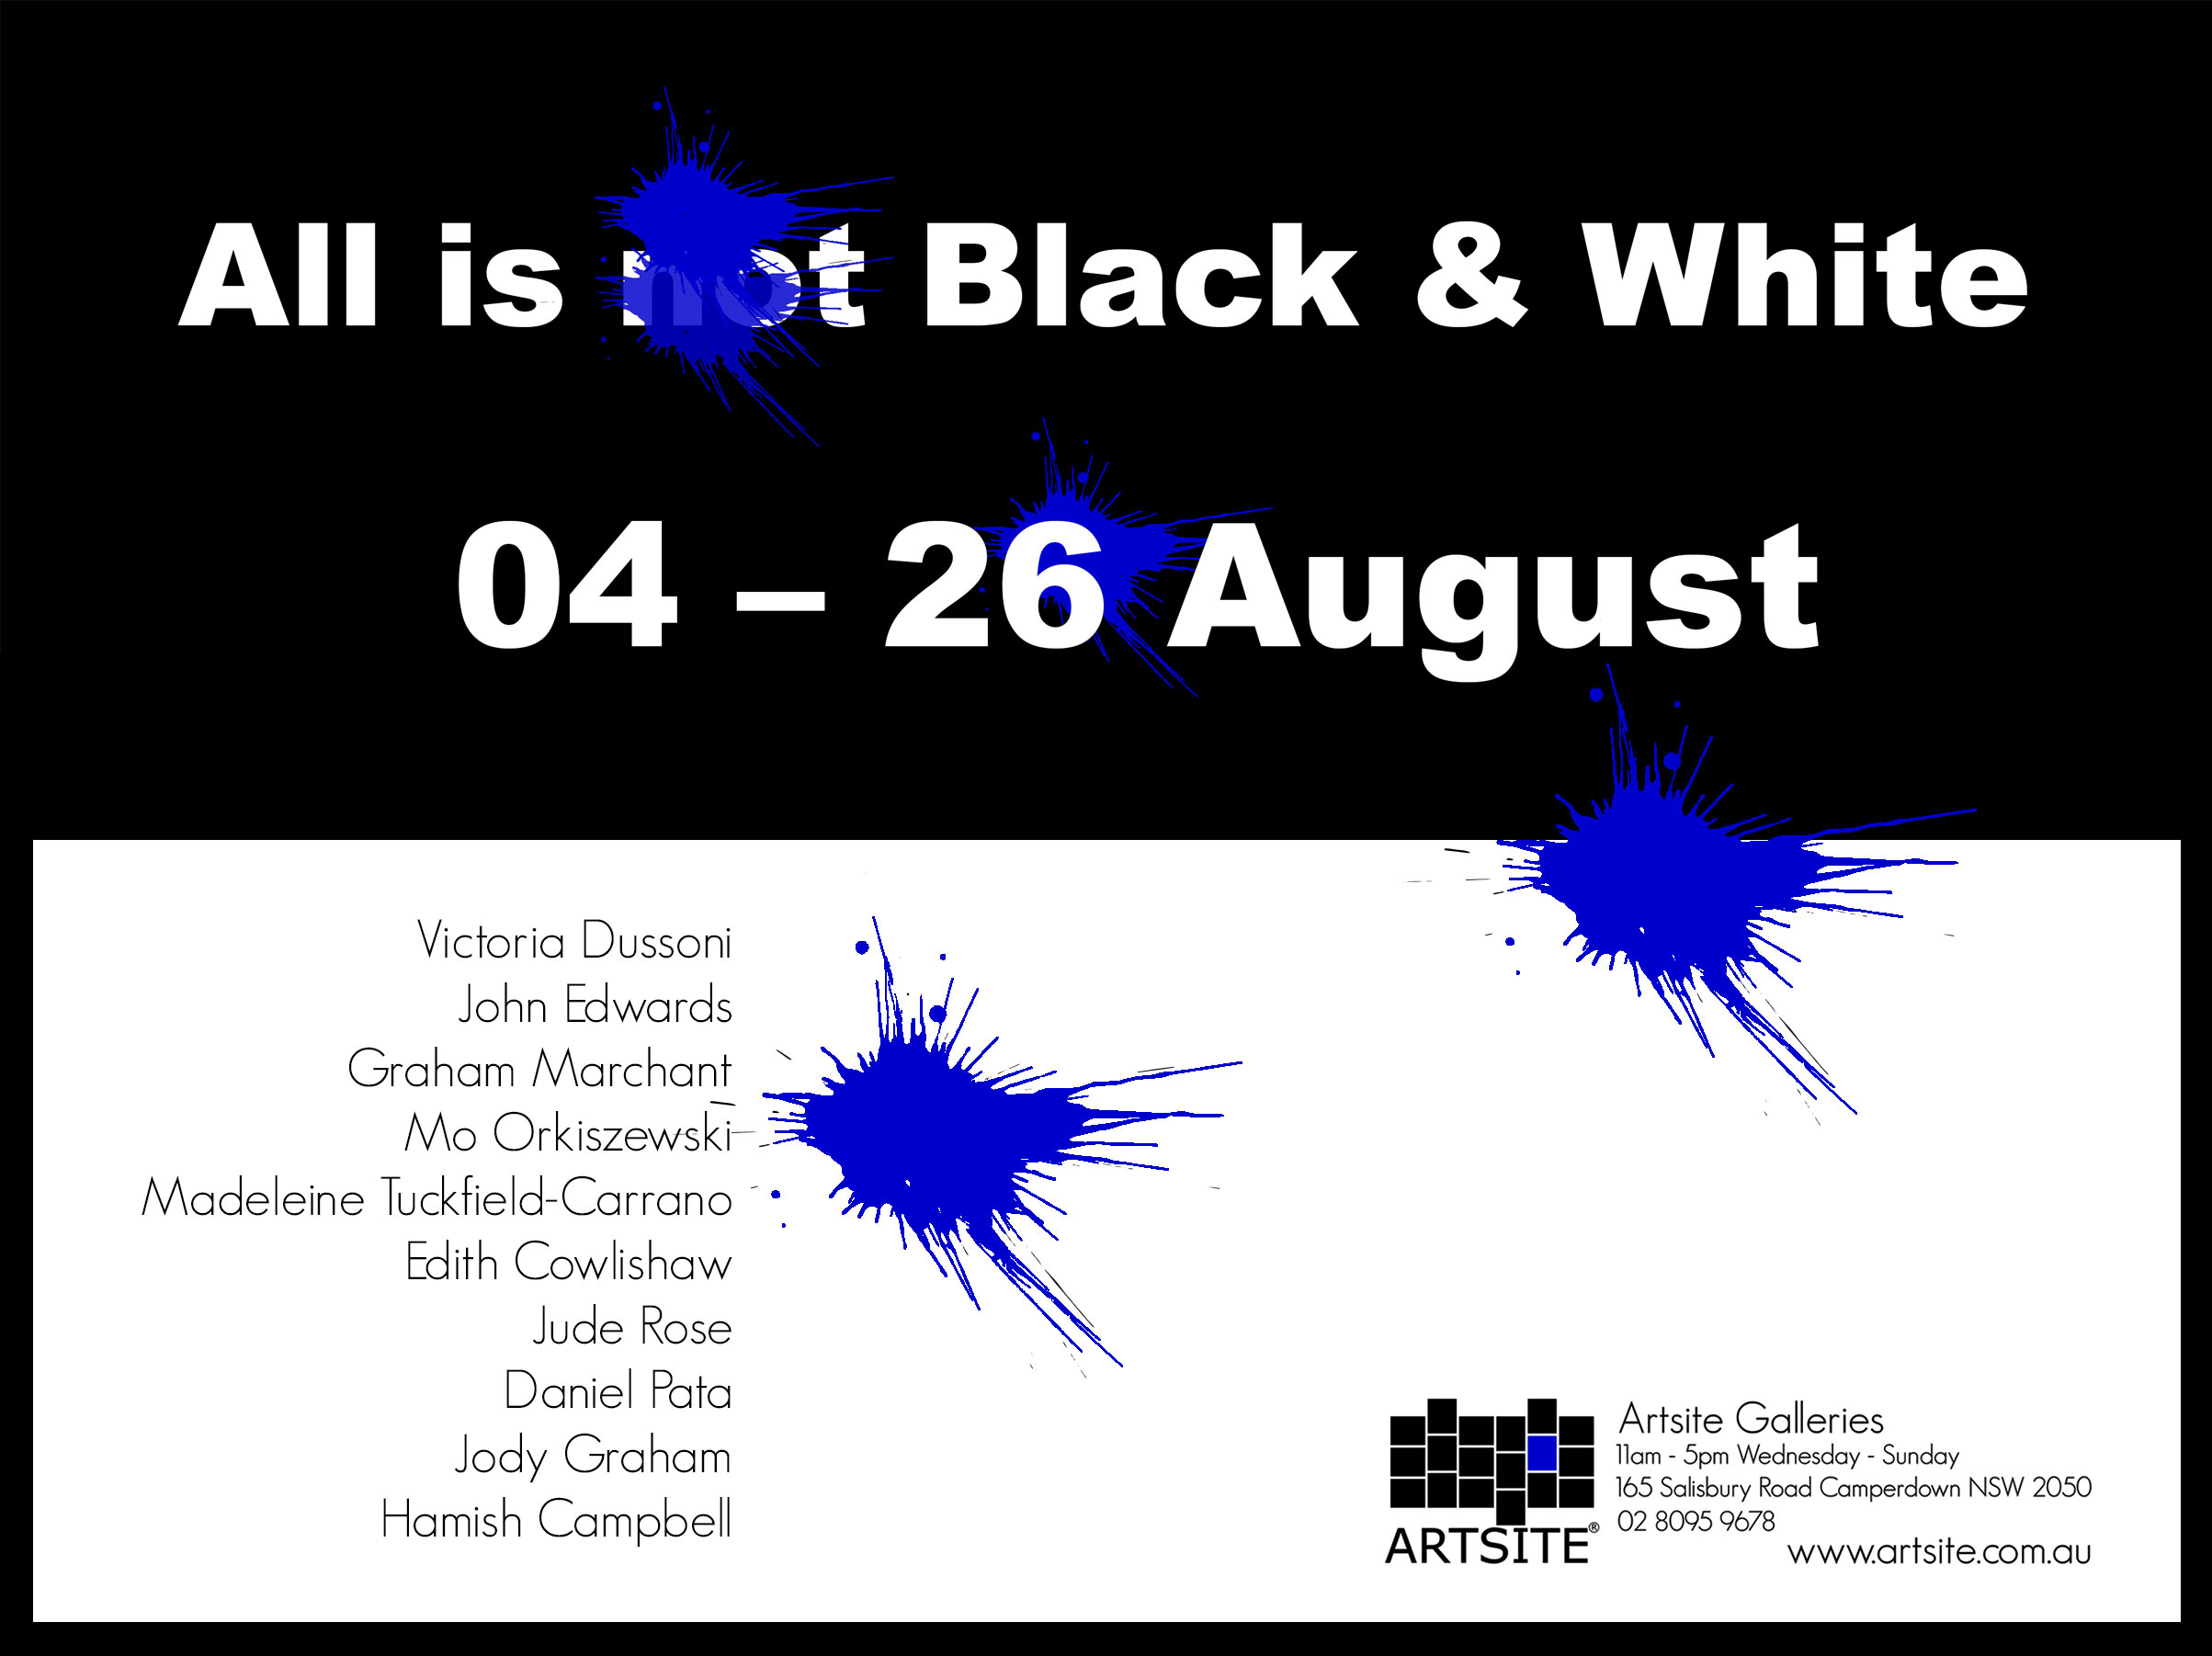 Artsite Galleries Exhibition | All is (not) Black and White | 04-26 August 2018 | Victoria Dussoni | John Edwards | Graham Marchant | Mo Orkiszewski | Madeleine Tuckfield-Carrano | Edith Cowlishaw | Jude Rose | Daniel Pata | Jody Graham | Hamish Campbell | Sandi Rigby | Jack Fangmin Wu